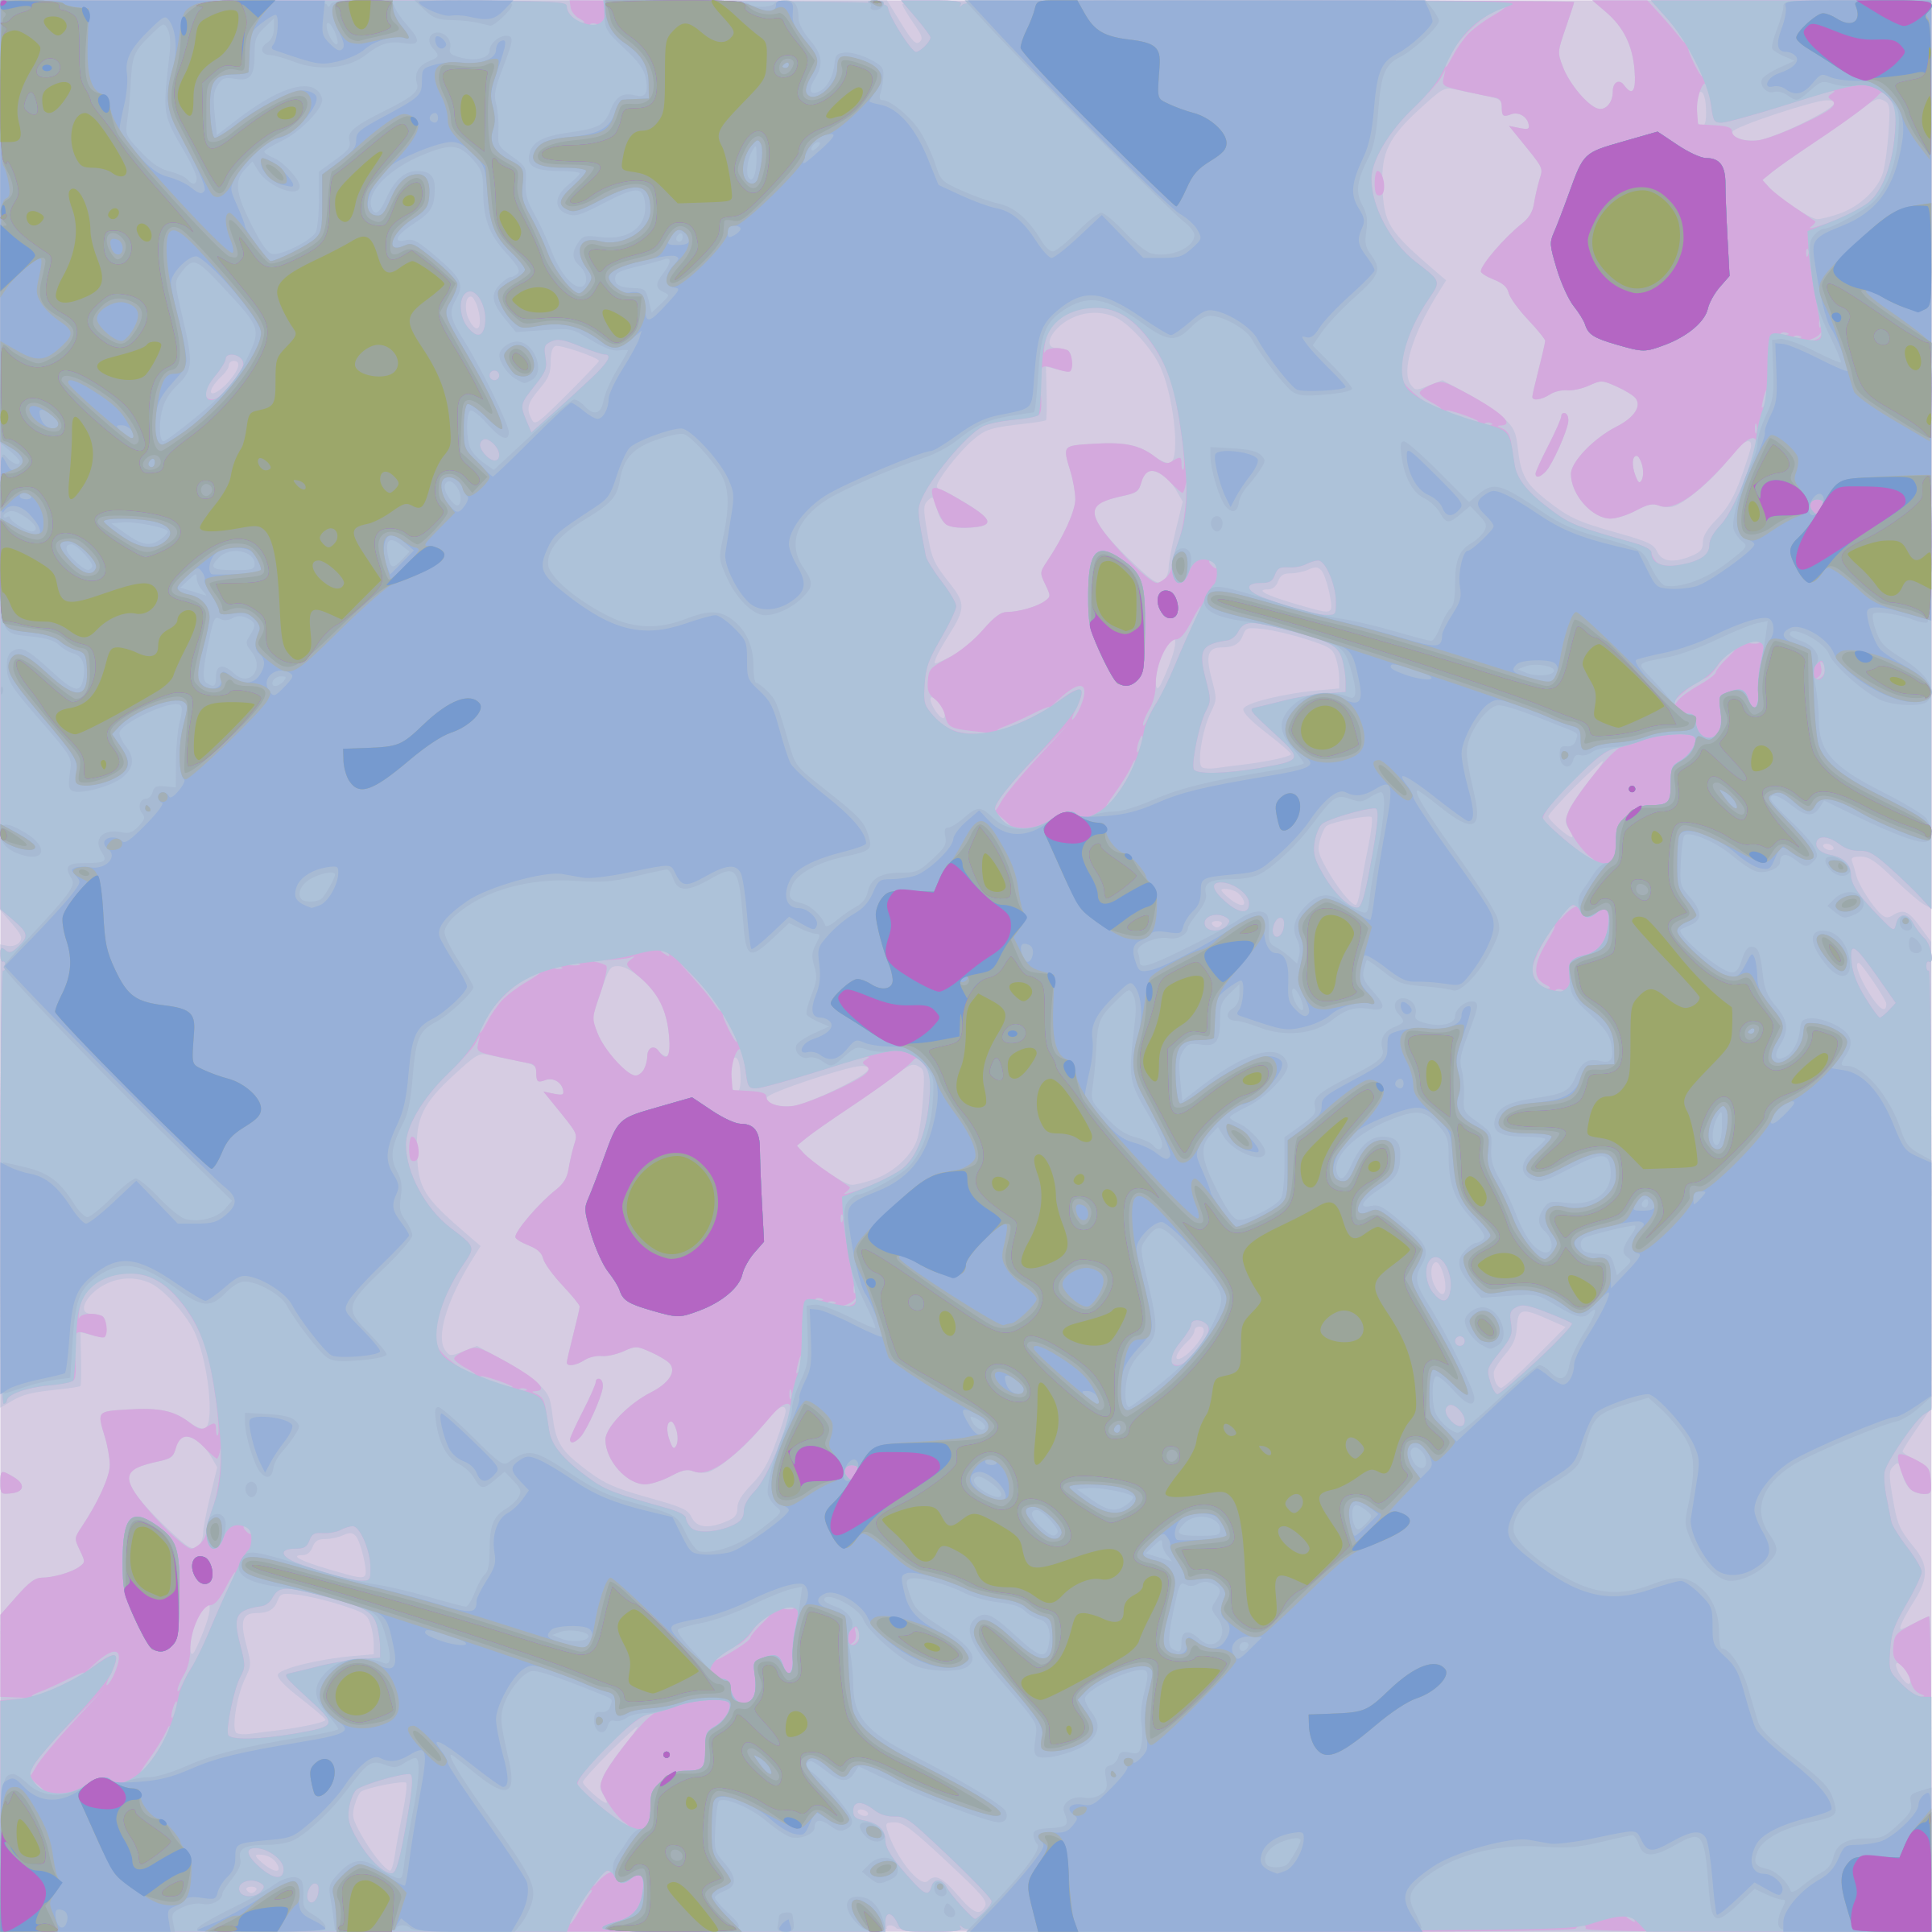 Flower Seamless Pattern 03 By Yamachem